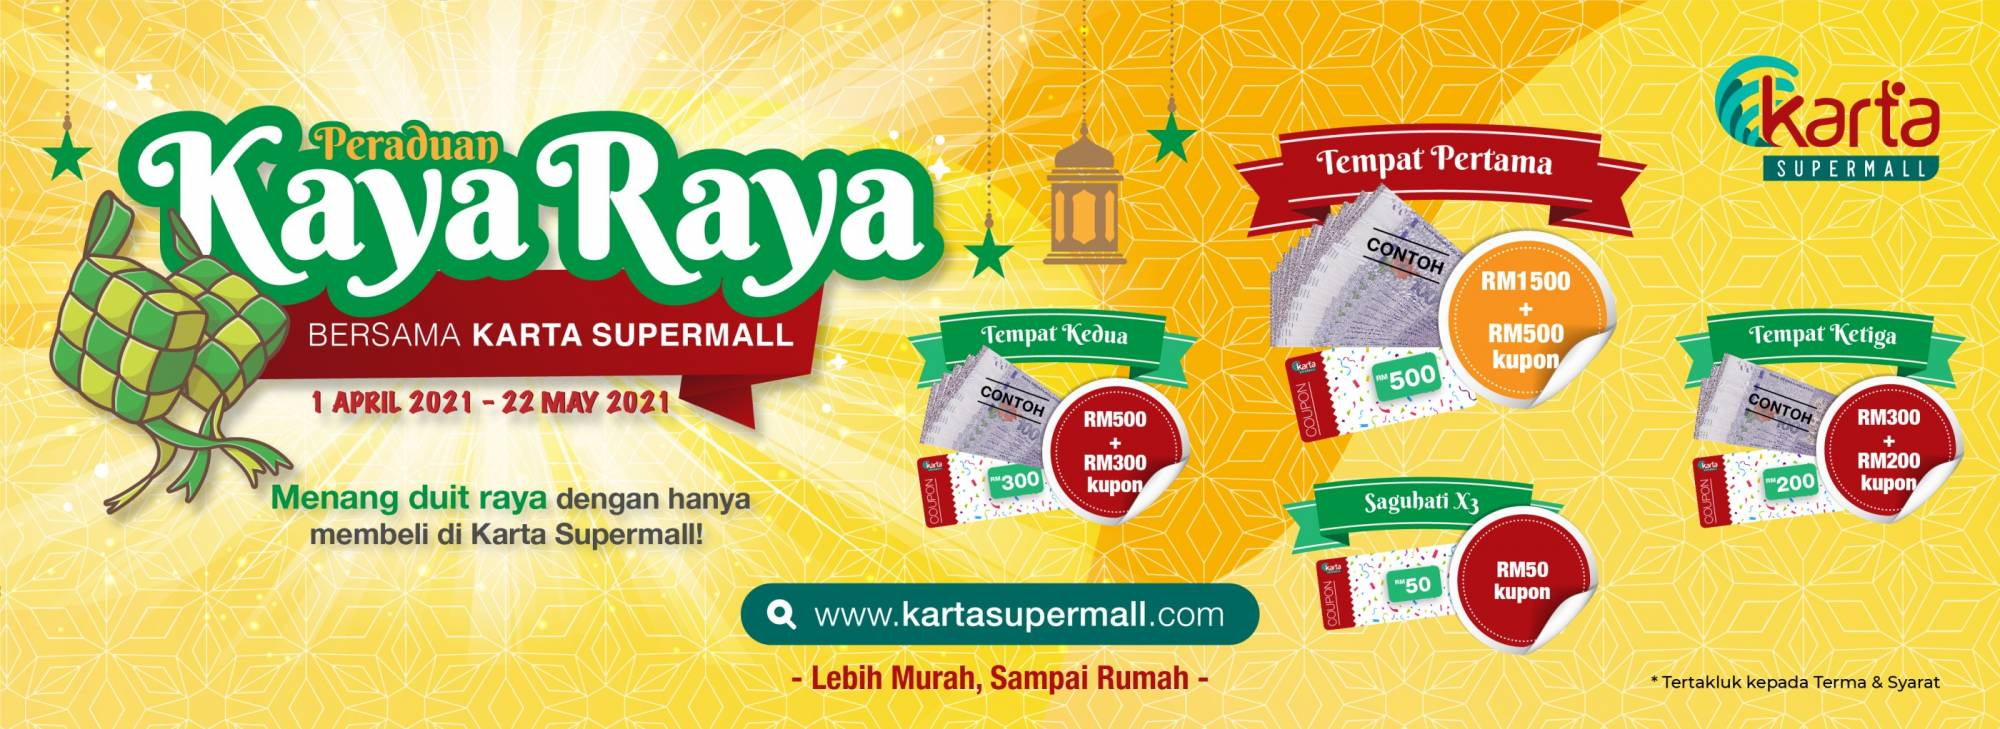 https://kartasupermall.com/kaya-raya-karta-supermall-terms-conditions